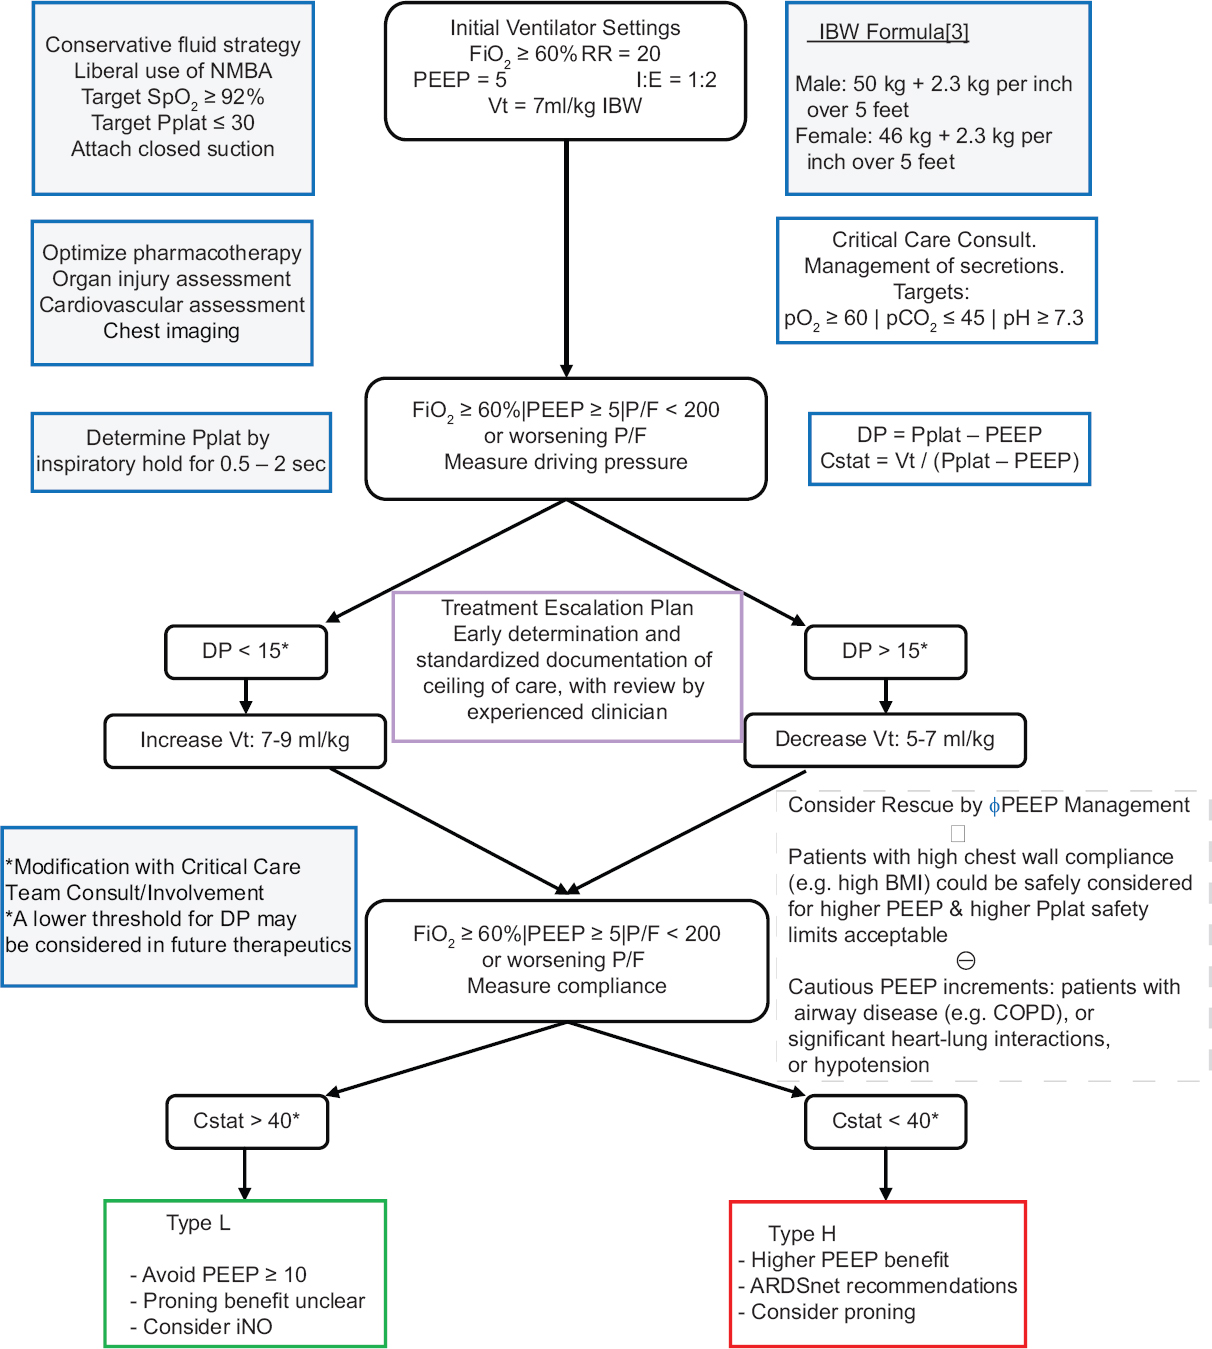 Figure 2: Management algorithm for coronavirus disease 2019 patients with respiratory failure requiring mechanical ventilation. IBW: Ideal body weight, FiO2: Fraction of inspired oxygen, PEEP: Positive end expiratory pressure, P/F: PaO2/FaO2, RR: Respiratory rate, Vt: Tidal volume, SpO2: Peripheral capillary oxygen saturation, DP: Driving pressure, Cstat: Static compliance, iNO: inhaled nitrous oxide, Pplat: Plateau pressure, ABG: Arterial blood gas, See references[56,57] for ARDSnet original sources